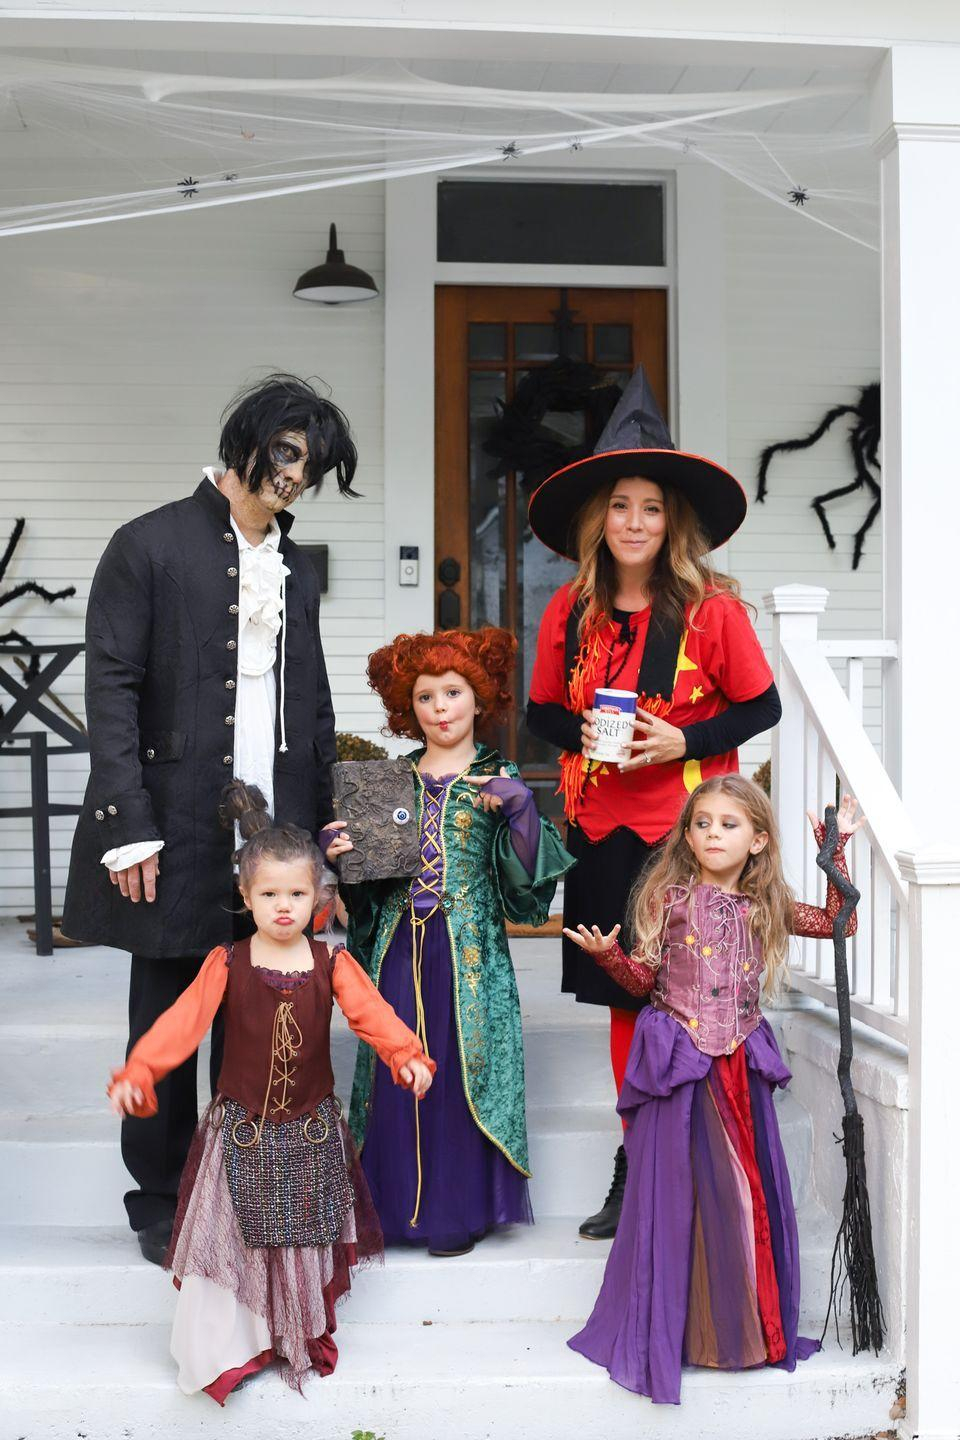 """<p>No curses will be necessary to make everyone you encounter fall under the spell of Winifred, Sarah, and Mary Sanderson with these adorable looks. Round out the group with Billy and Dani—and don't forget the <a href=""""https://www.amazon.com/Morton-Salt-26-oz/dp/B000Q3E8EA/ref=dp_prsubs_2?pd_rd_i=B08F6YV5MY&psc=1&tag=syn-yahoo-20&ascsubtag=%5Bartid%7C10050.g.29074815%5Bsrc%7Cyahoo-us"""" rel=""""nofollow noopener"""" target=""""_blank"""" data-ylk=""""slk:salt"""" class=""""link rapid-noclick-resp"""">salt</a>! </p><p><strong>Get the full tutorial at <a href=""""https://www.thegrayruby.com/hocus-pocus-family-halloween-costume/"""" rel=""""nofollow noopener"""" target=""""_blank"""" data-ylk=""""slk:The Gray Ruby"""" class=""""link rapid-noclick-resp"""">The Gray Ruby</a>. </strong></p><p><a class=""""link rapid-noclick-resp"""" href=""""https://www.amazon.com/Onene-Halloween-Broomstick-Realistic-Accessory/dp/B07Y46SX28/ref=sr_1_5?tag=syn-yahoo-20&ascsubtag=%5Bartid%7C10050.g.29074815%5Bsrc%7Cyahoo-us"""" rel=""""nofollow noopener"""" target=""""_blank"""" data-ylk=""""slk:SHOP BROOMSTICKS"""">SHOP BROOMSTICKS</a><br></p>"""